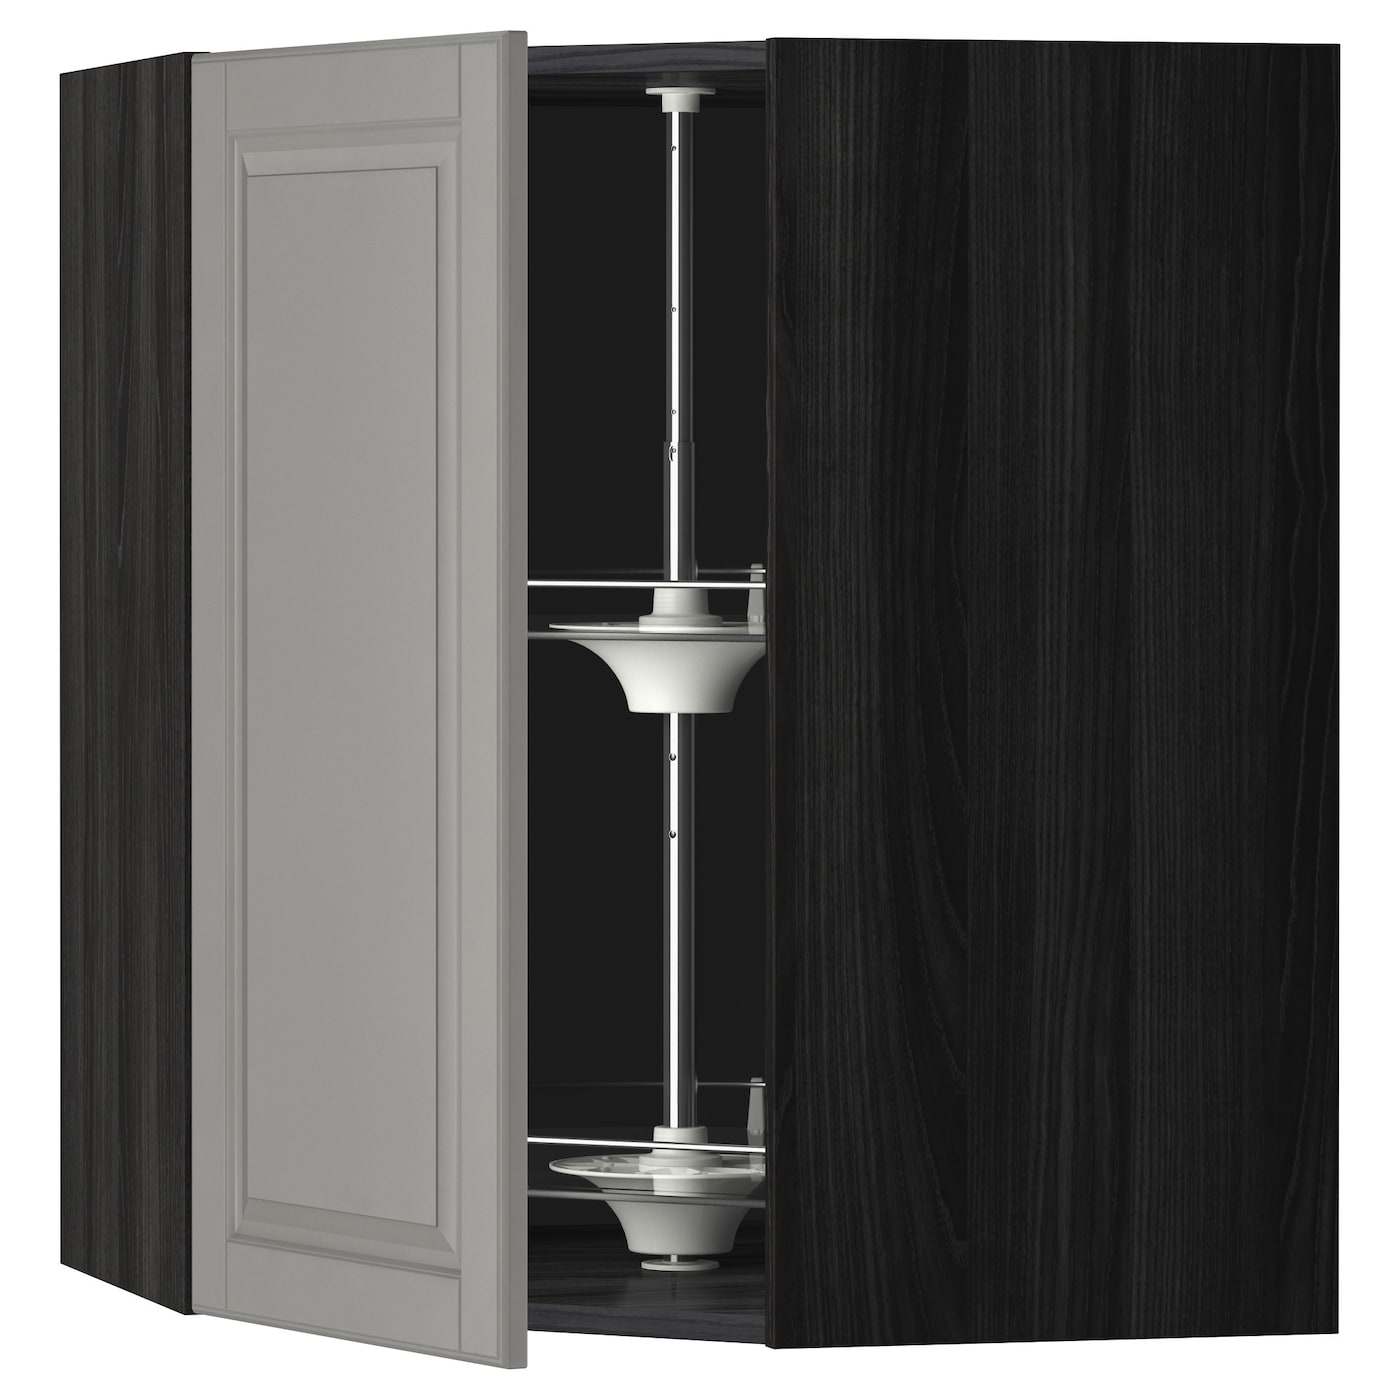 Ikea Kitchen Cabinet Construction: METOD Corner Wall Cabinet With Carousel Black/bodbyn Grey